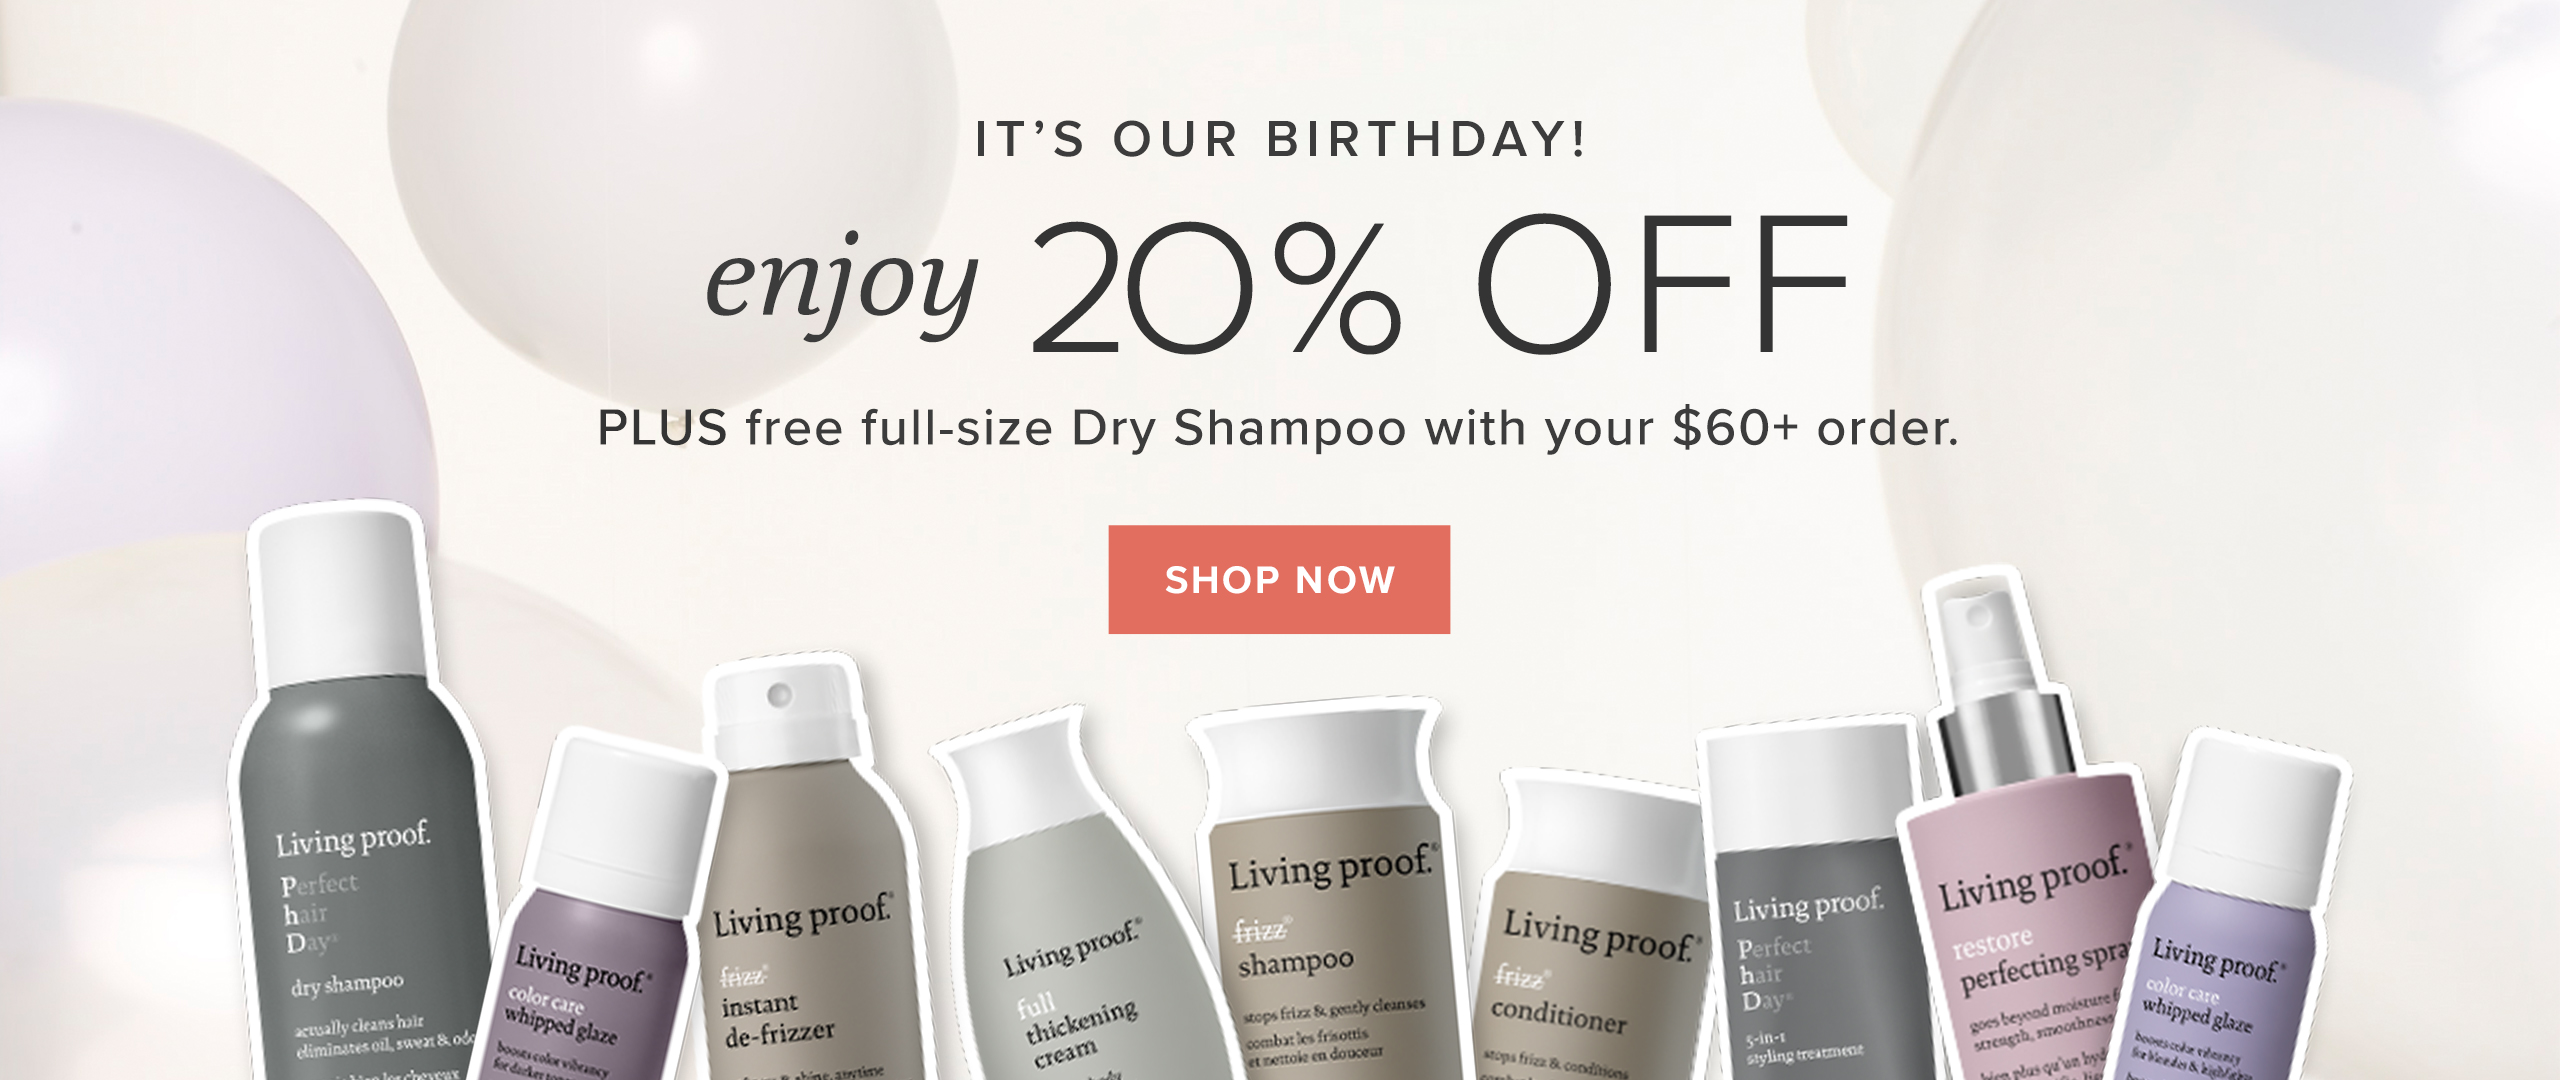 It's our birthday! Enjoy 20% off plus free full-size Dry Shampoo with your $60+ order.